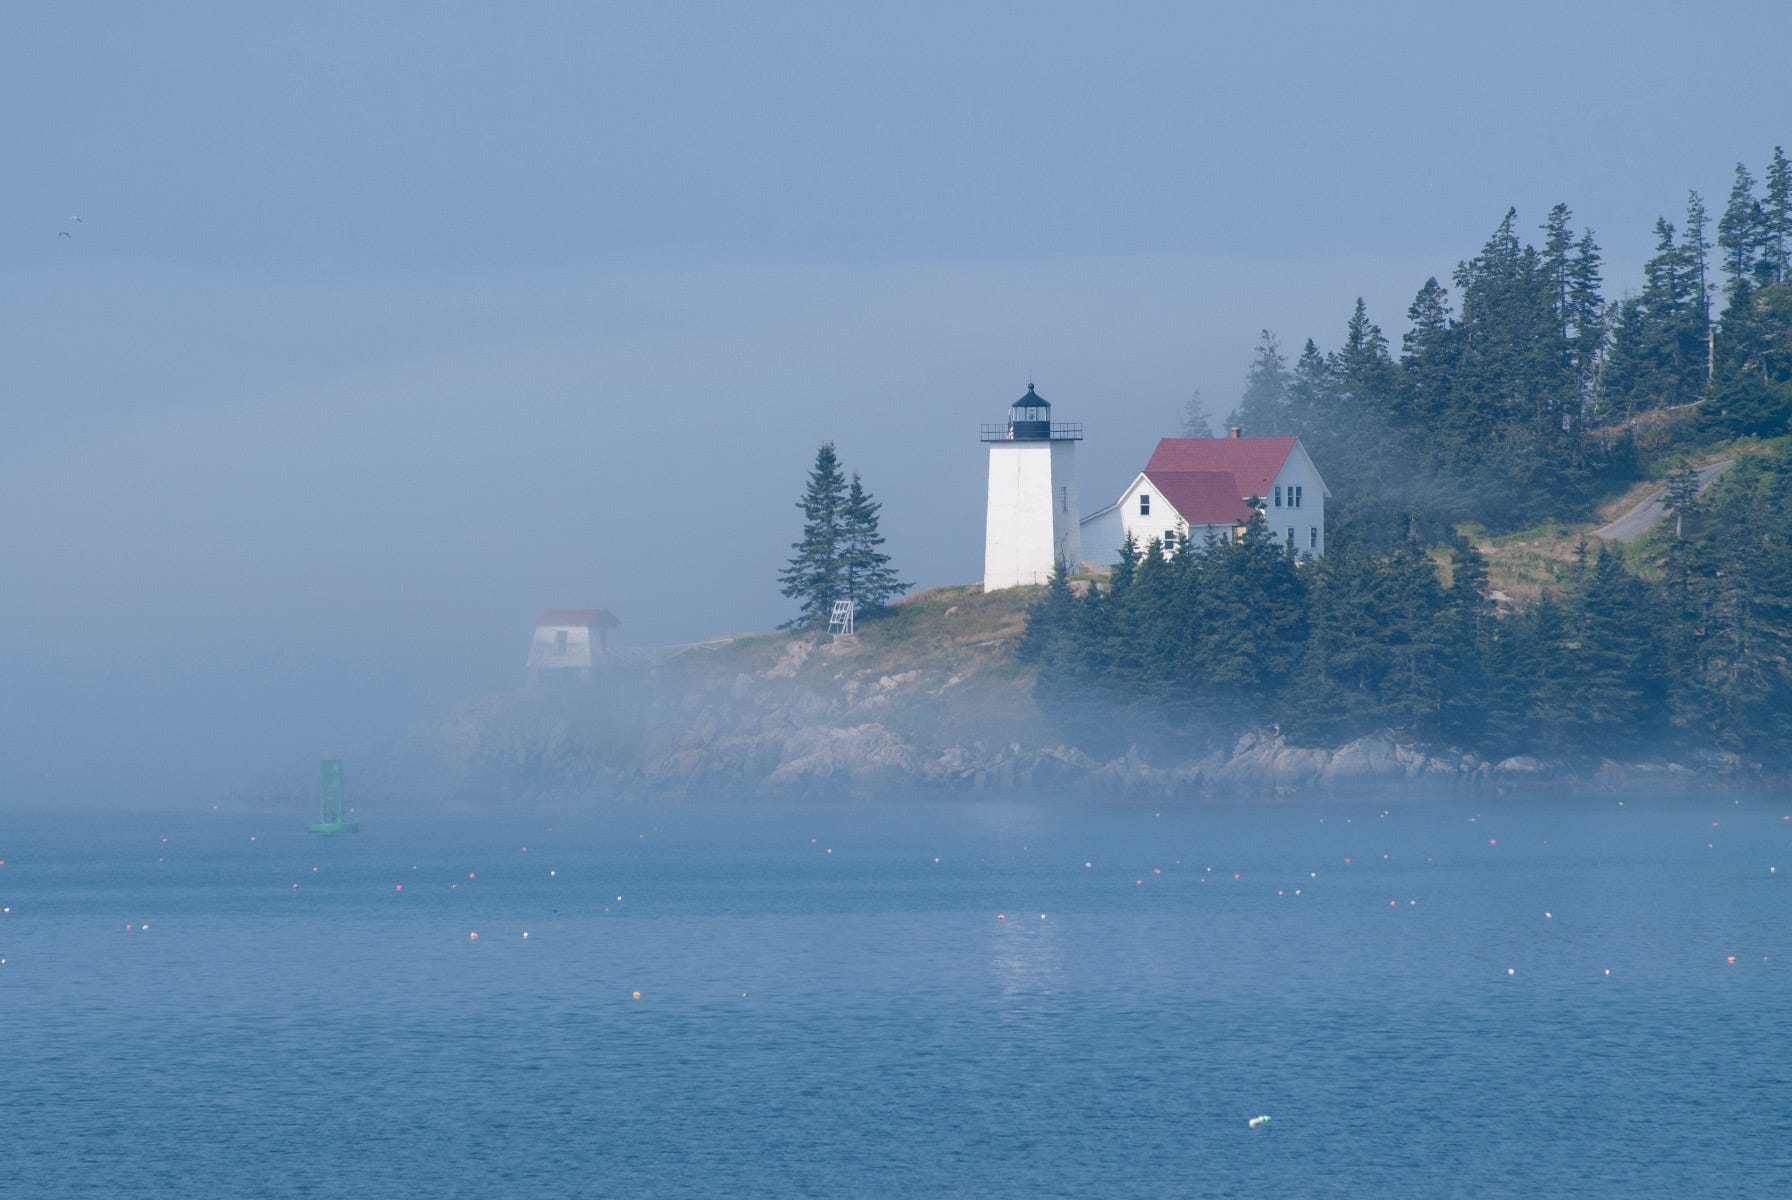 White lighthouse along the water